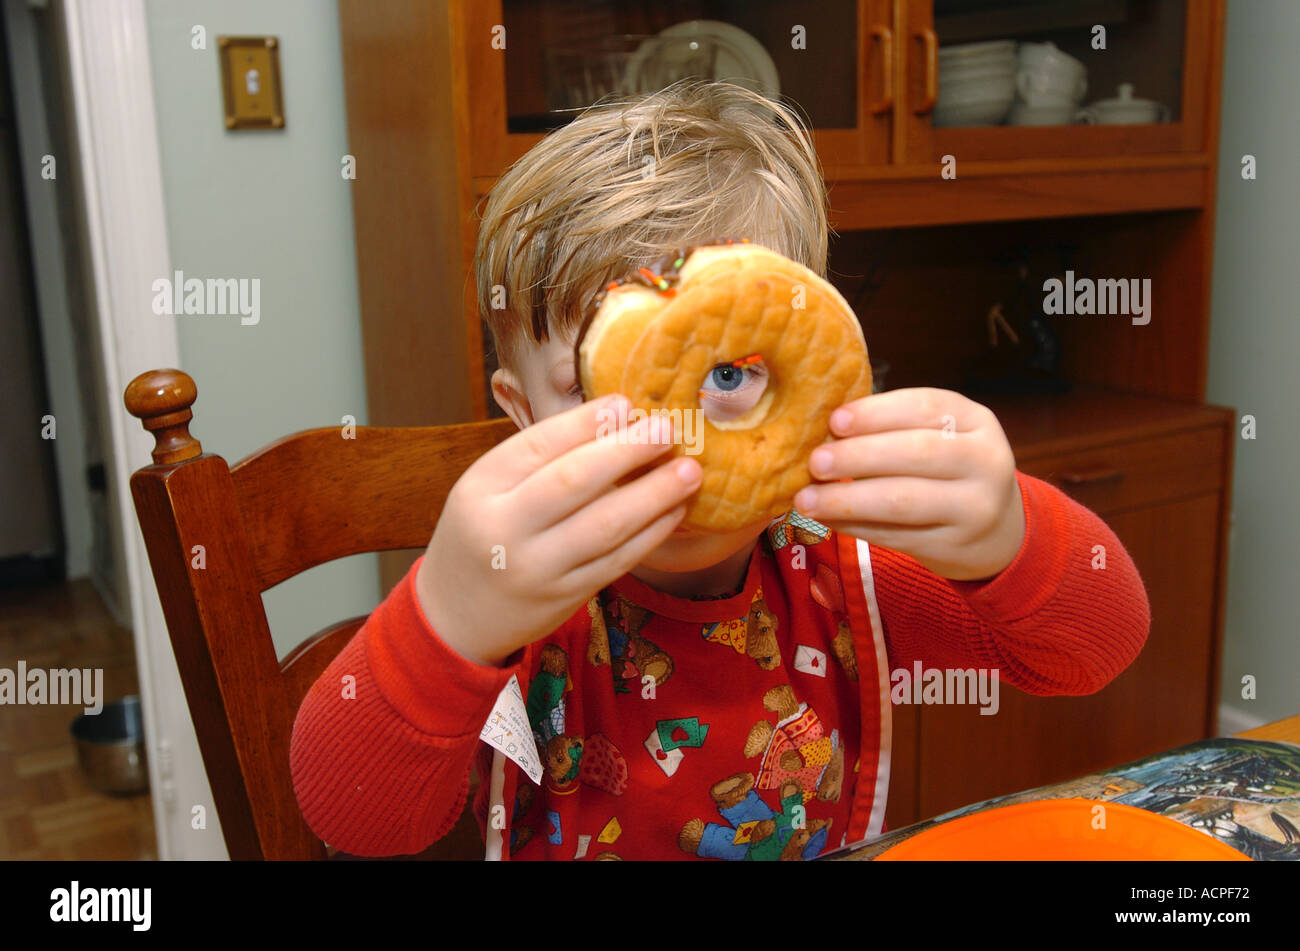 Child Humor small boy looking through a doughnut at a table - Stock Image